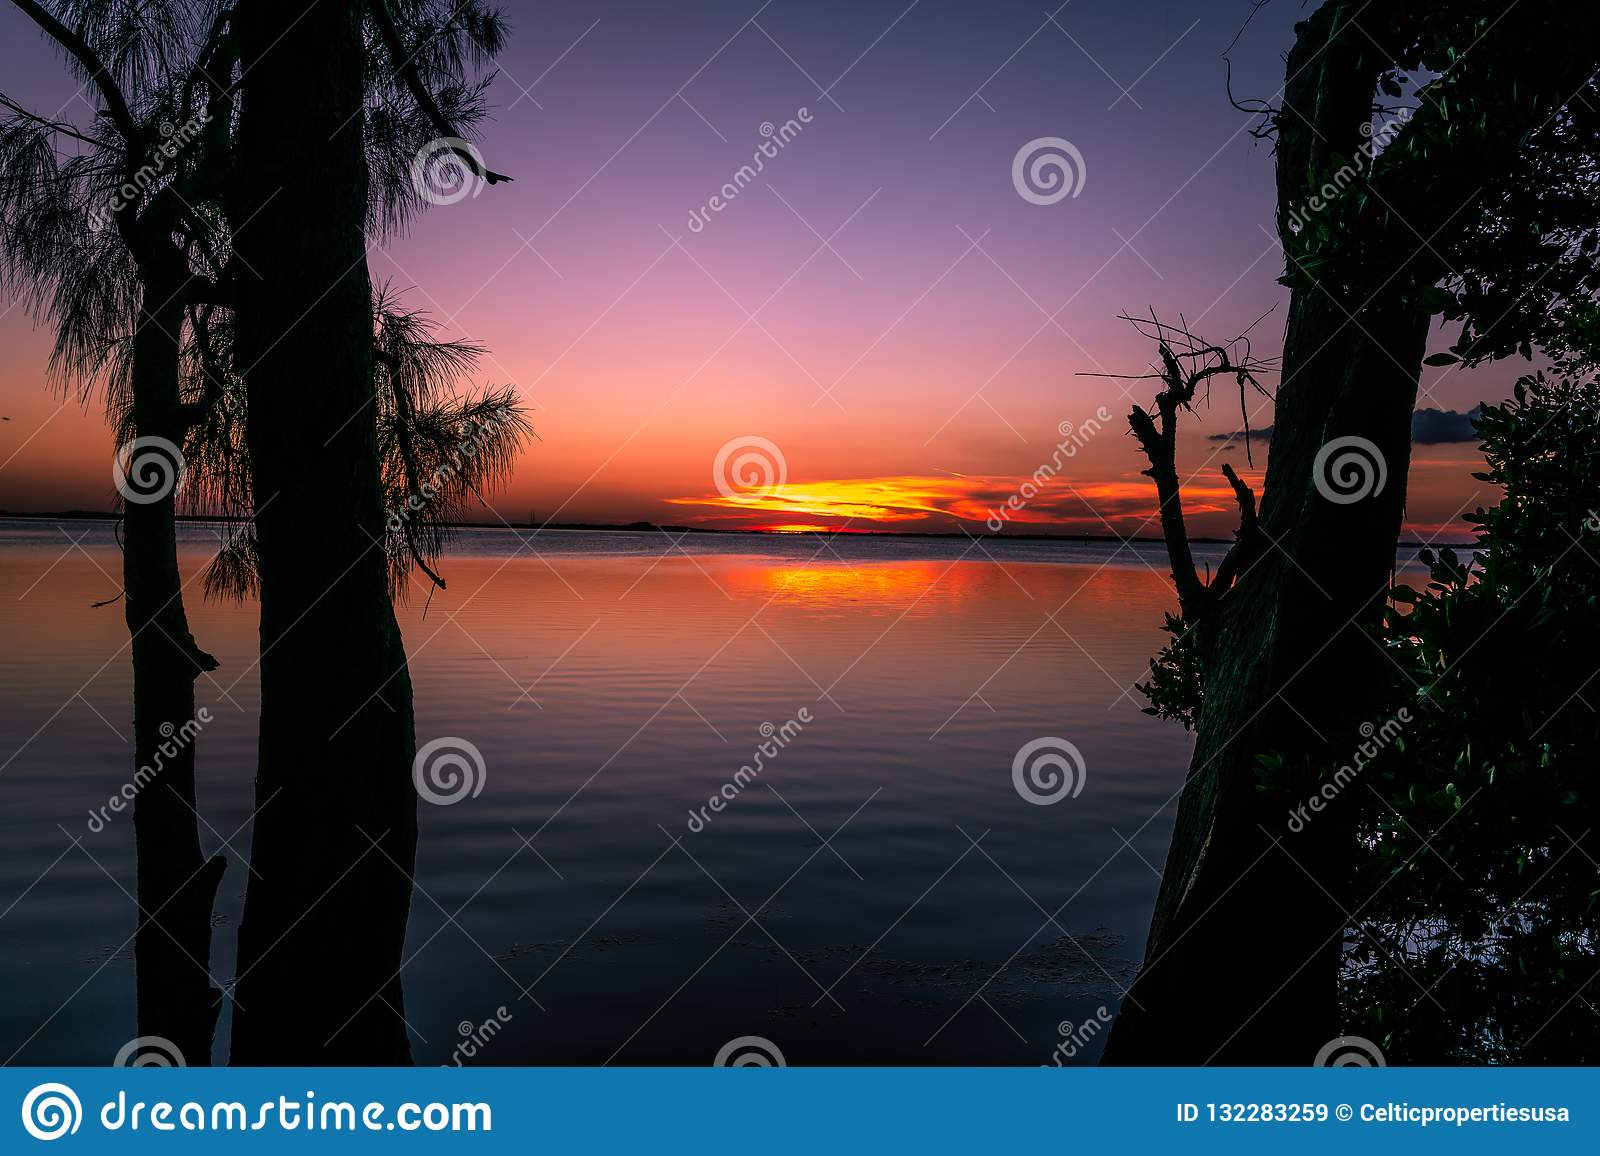 2f72d9c0c4eec A Spectacular Sunset On The Bay Stock Image - Image of spectacular ...